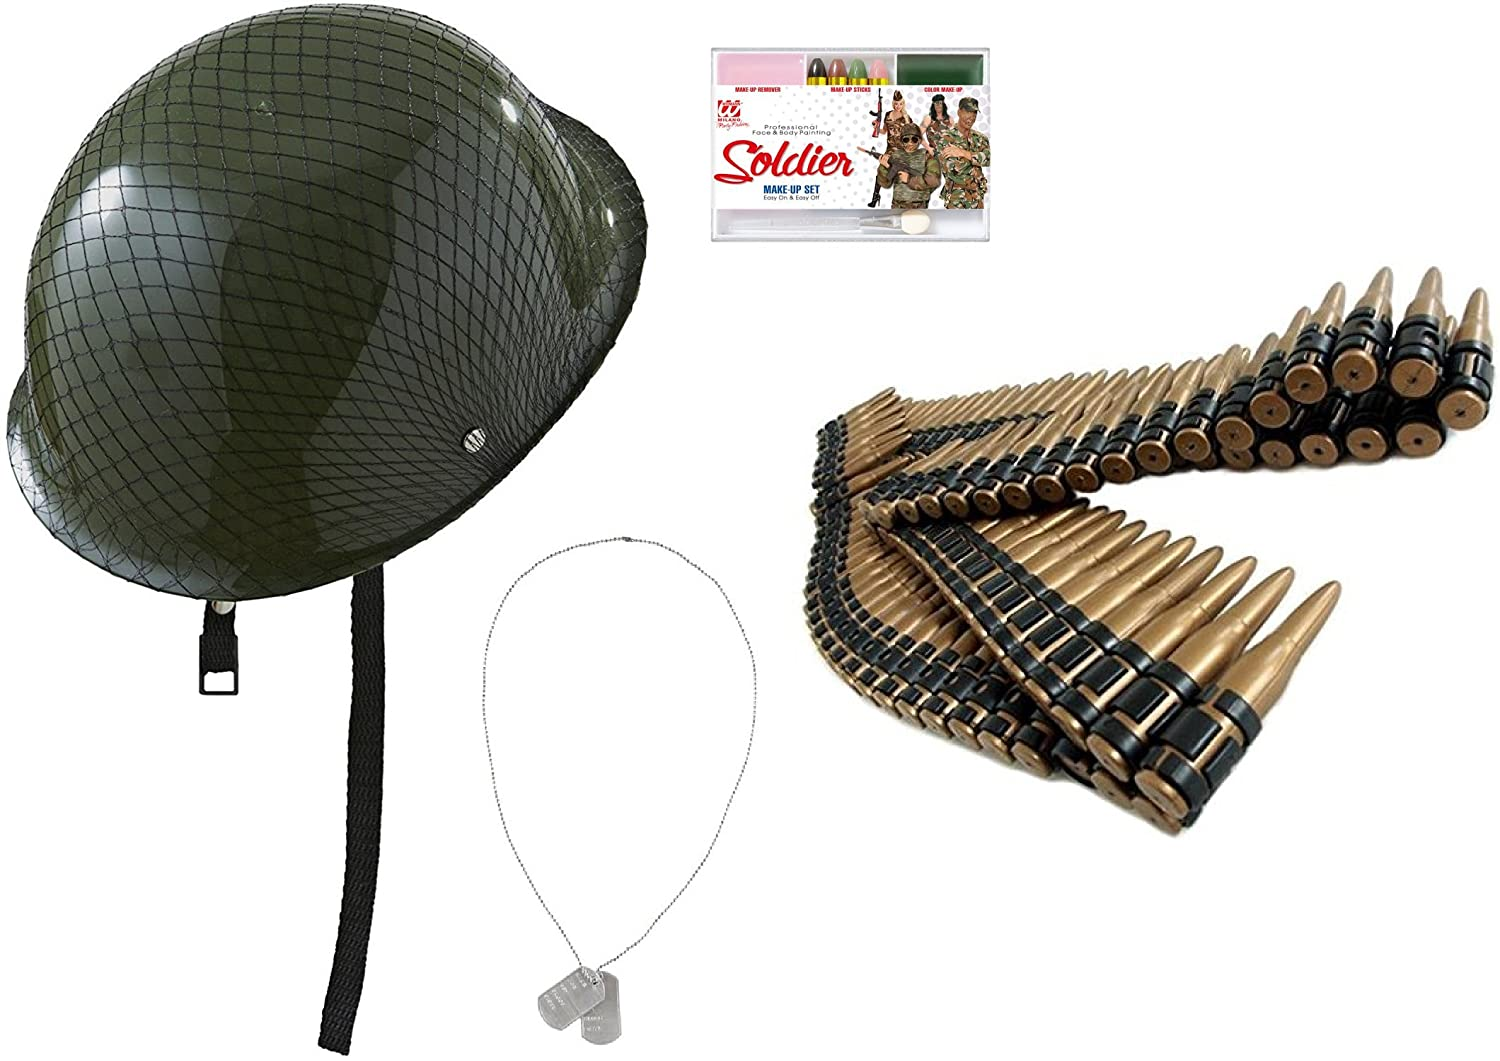 67da3be7f11 Cargo Army Camouflage Military Unisex Green Helmet Hat Plastic Bullet Belt  Metal Dog Tags and Army Military Make-Up Kit Soldier Outfit Uniform Costume  ...